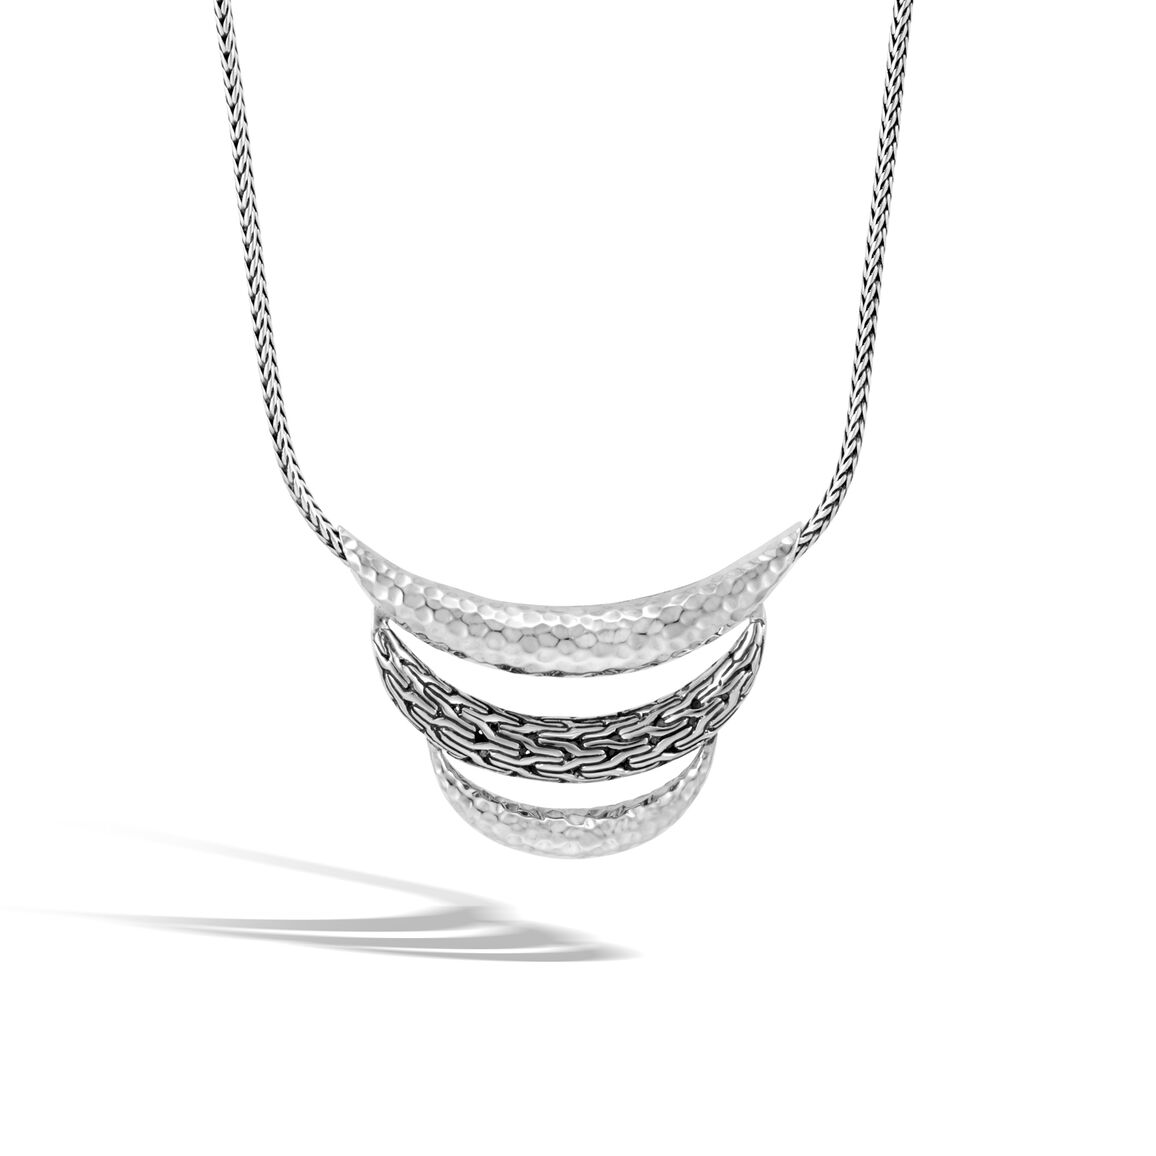 Classic Chain Bib Necklace in Hammered Silver